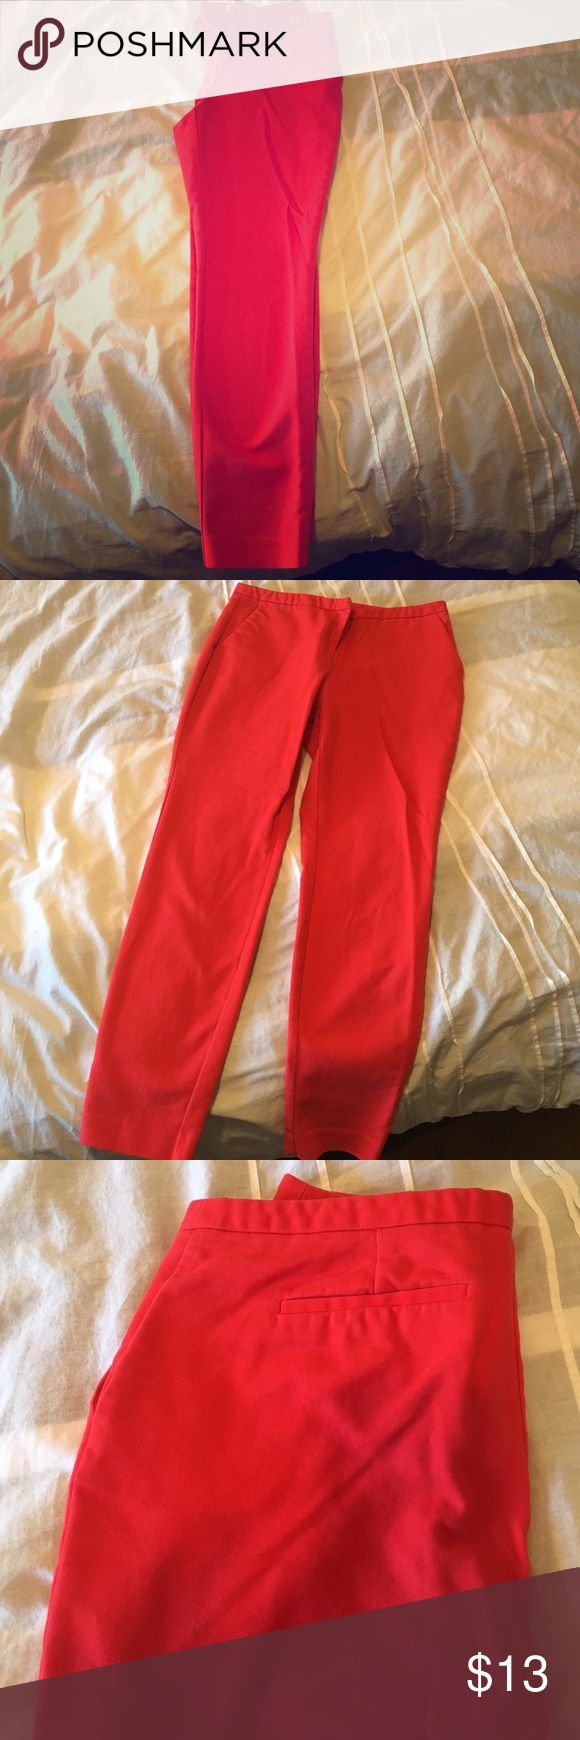 Adorable red skinny pants, size 6. Forever 21 Adorable red skinny forever 21 essentials. Dress them up or wear with a relaxed fit. Forever 21 Pants Ankle & Cropped